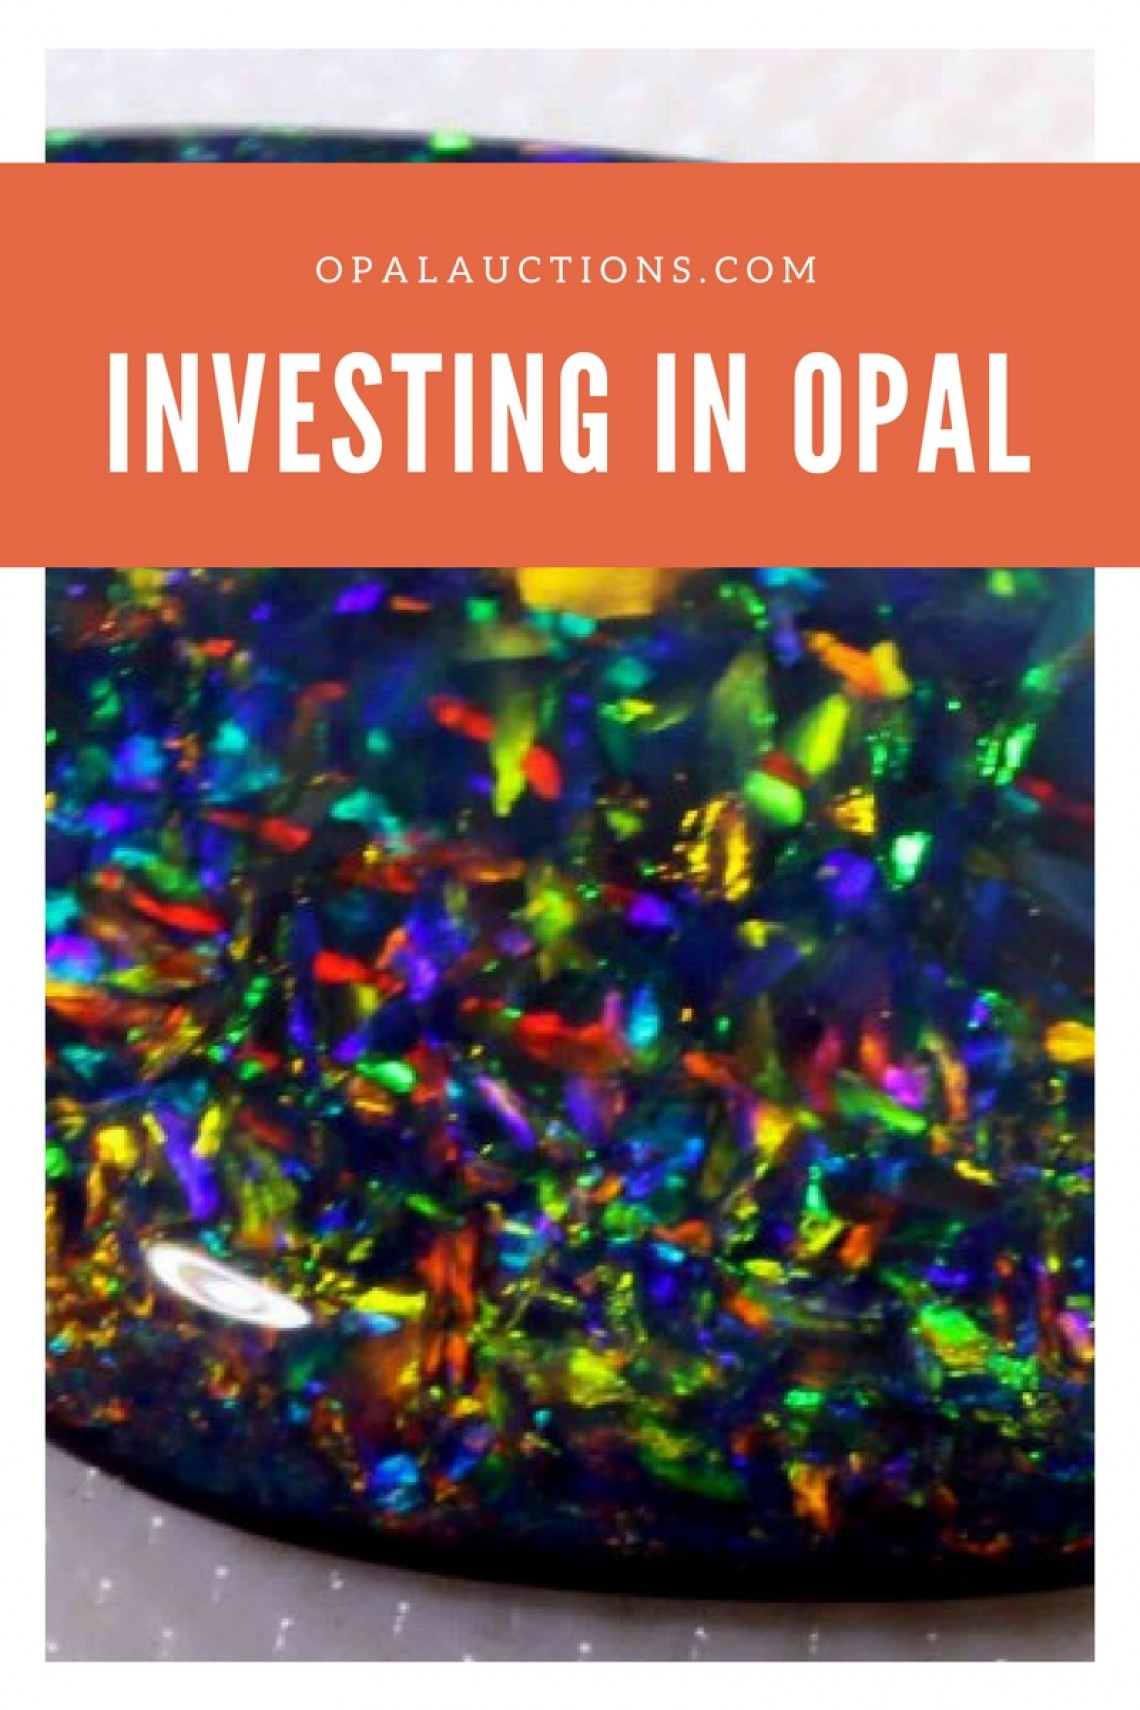 Is Investing In Opal A Good Idea  Opal Auctions